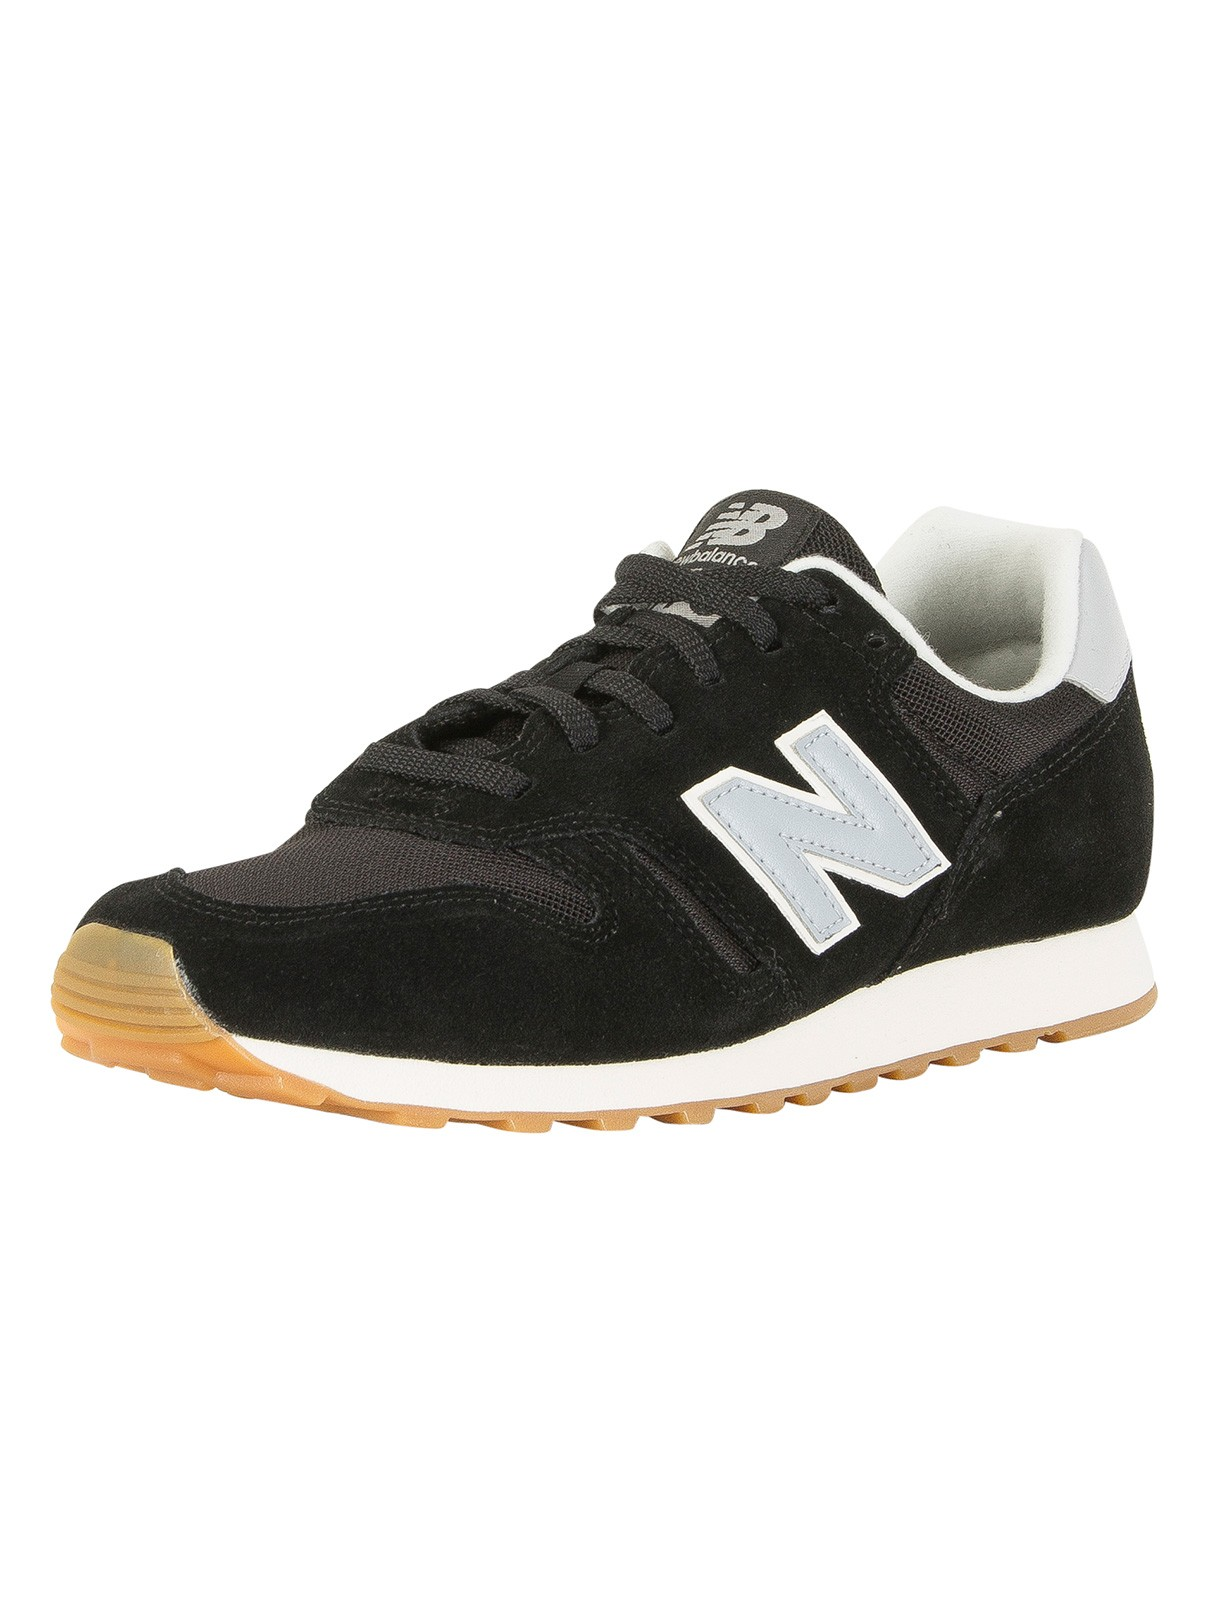 fe13c7b4667 New Balance Black Light Blue 373 Trainers